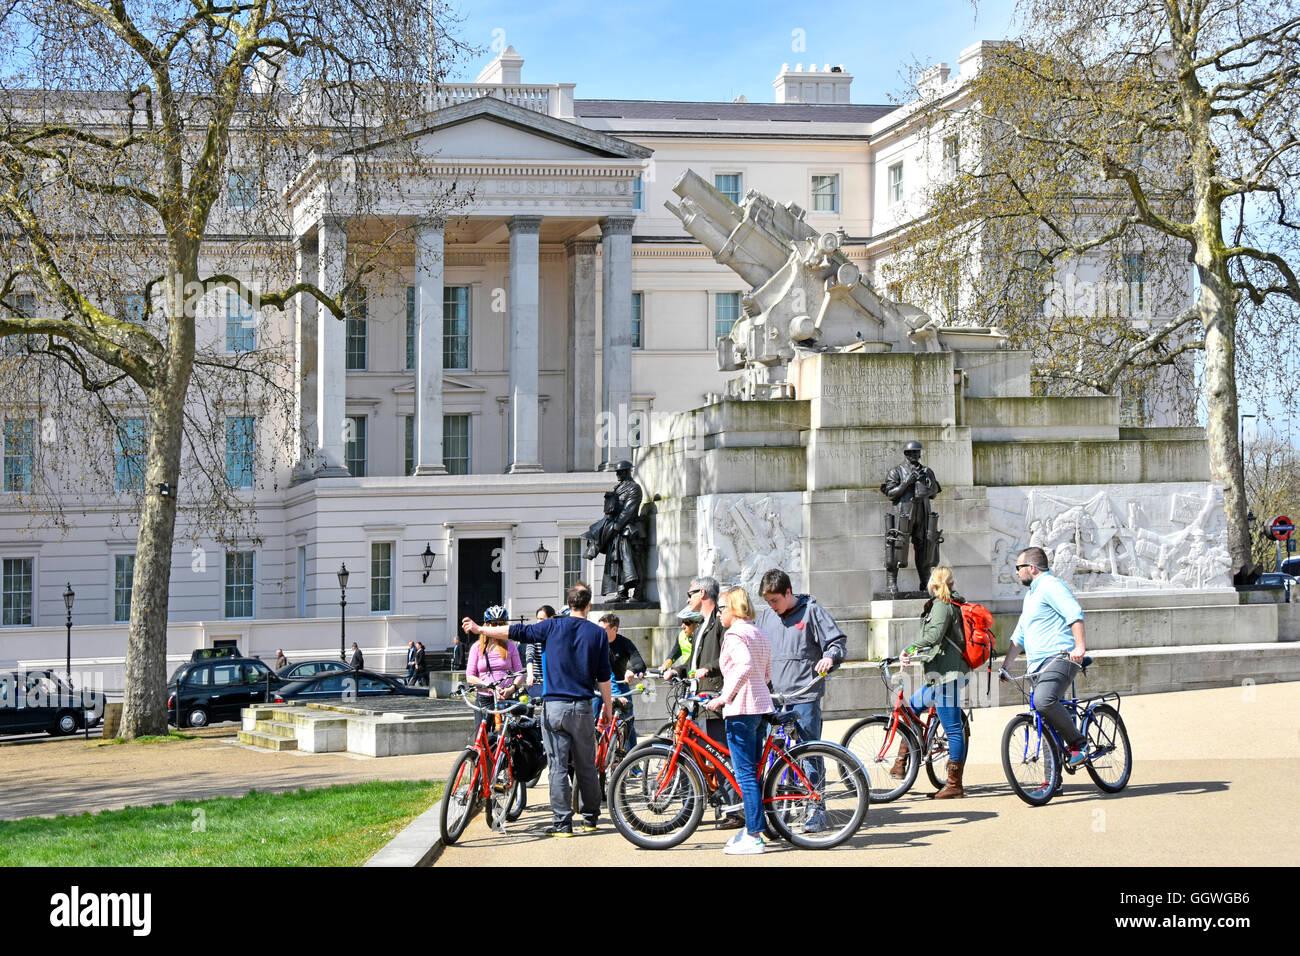 Tour guide (pointing) with cycle tourist group beside the The Royal Artillery Memorial at Hyde Park Corner London - Stock Image